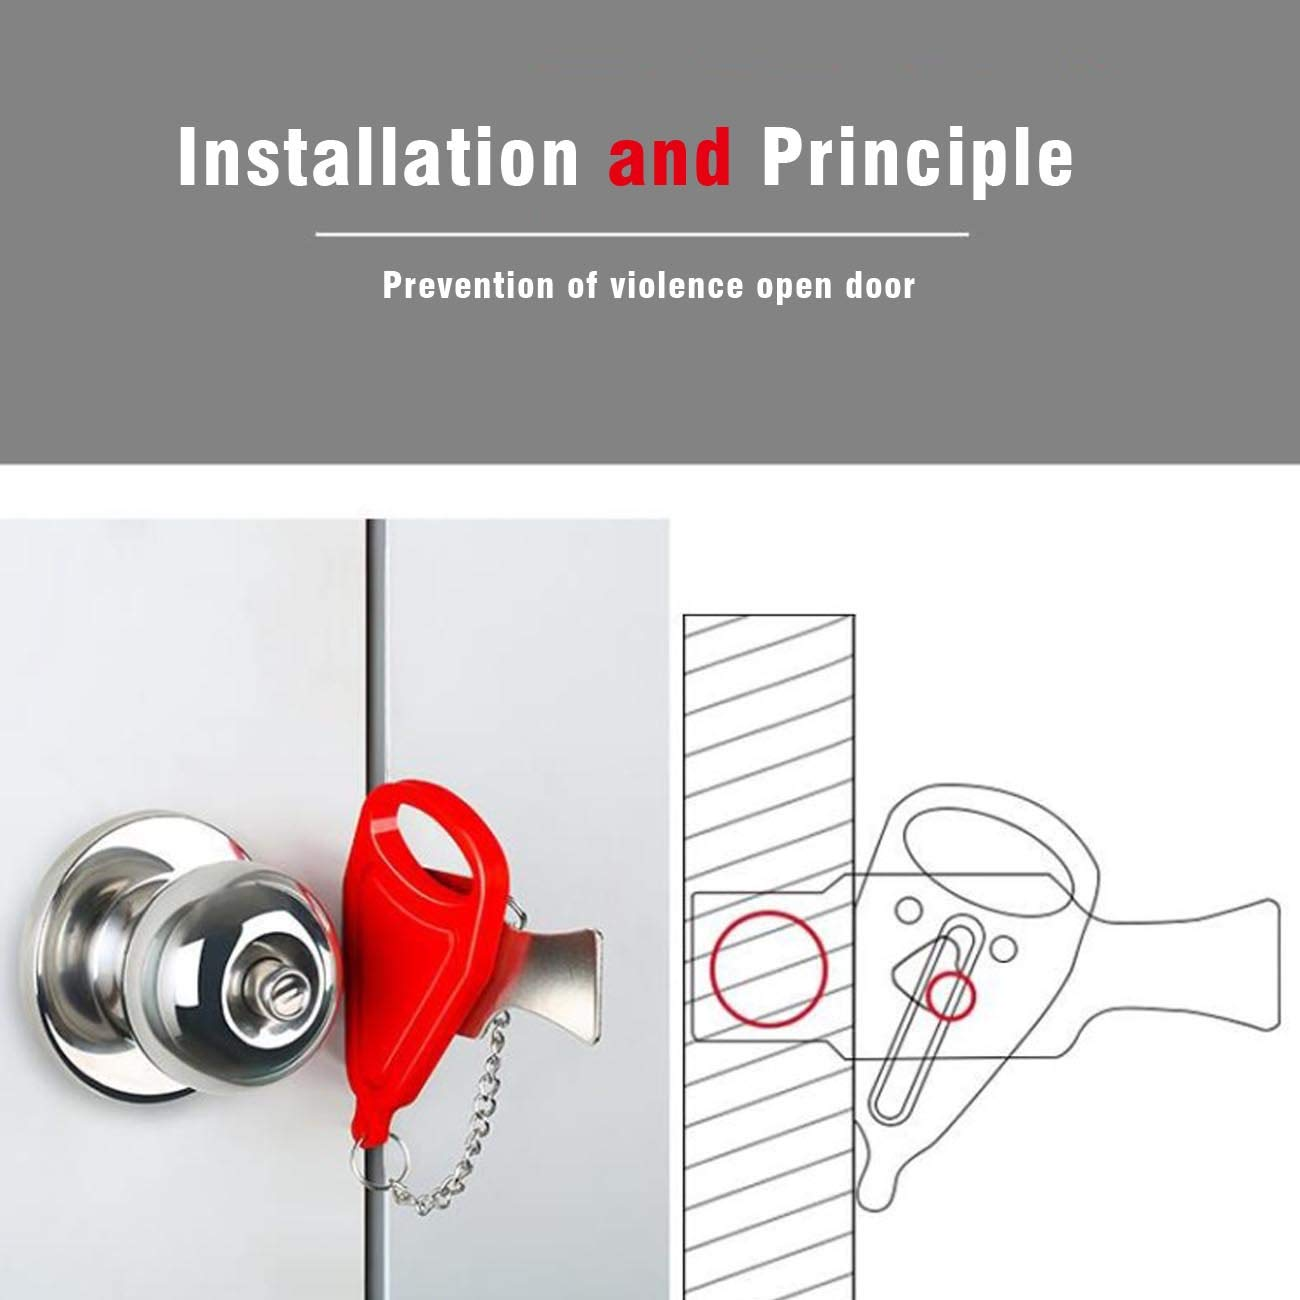 Genleas 2 Pack Portable Security Door Lock /& Window Lock Hardware Safety Security Tool for Home Privacy Travel Hotel Women Travel Anti-Theft Lock Easy Install